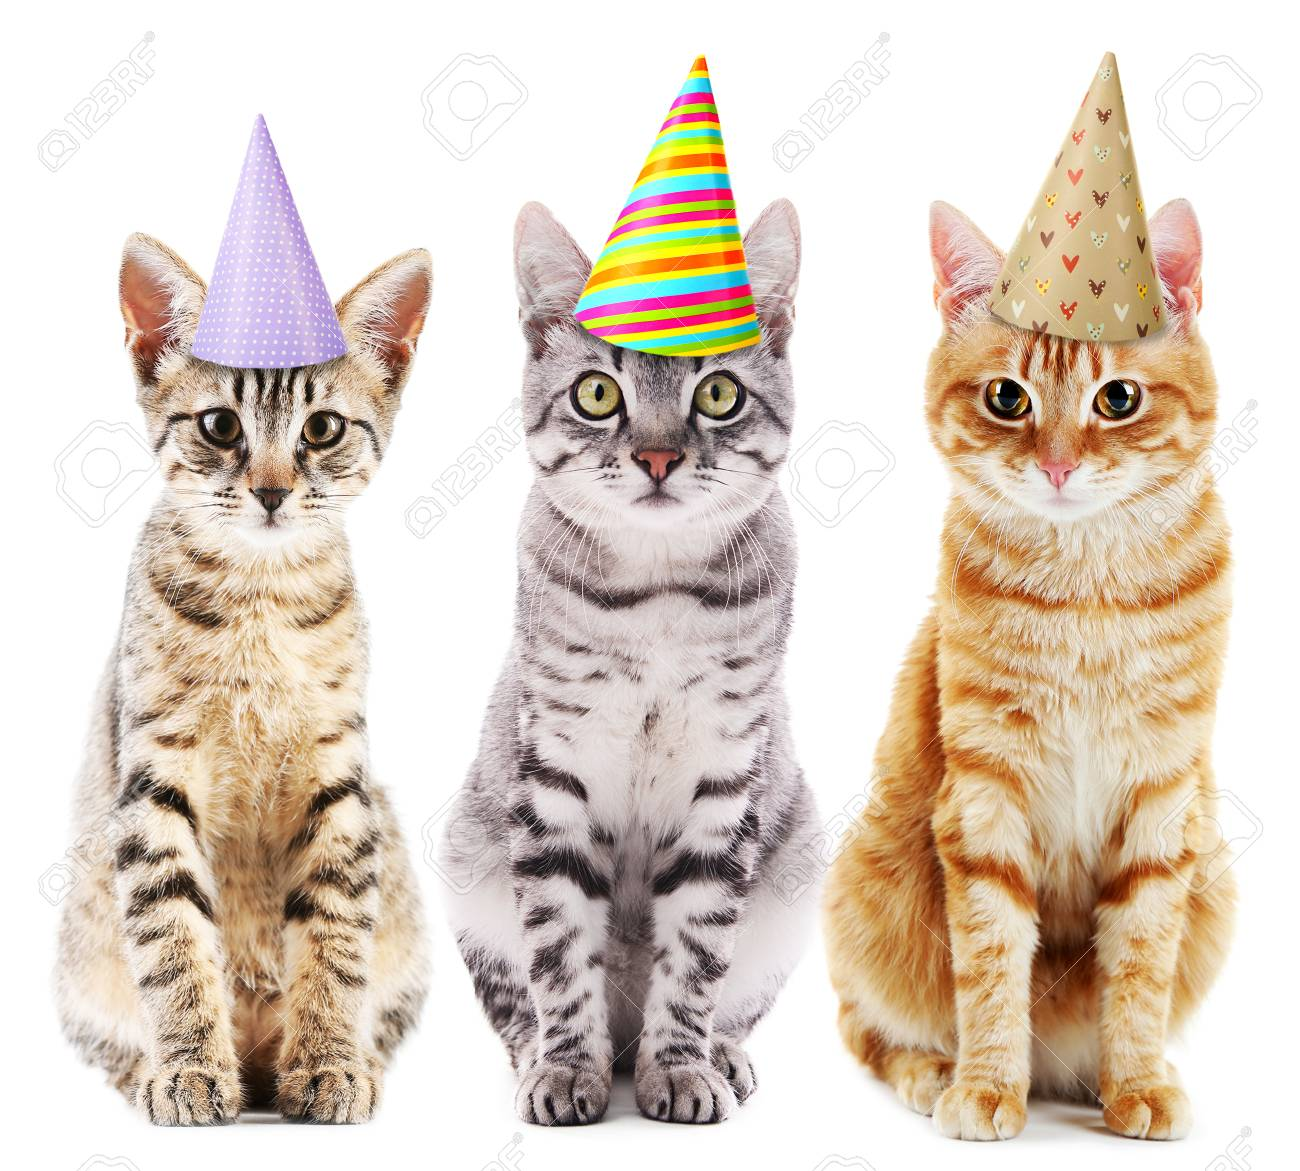 Three cute cats in colorful party hats, isolated on white